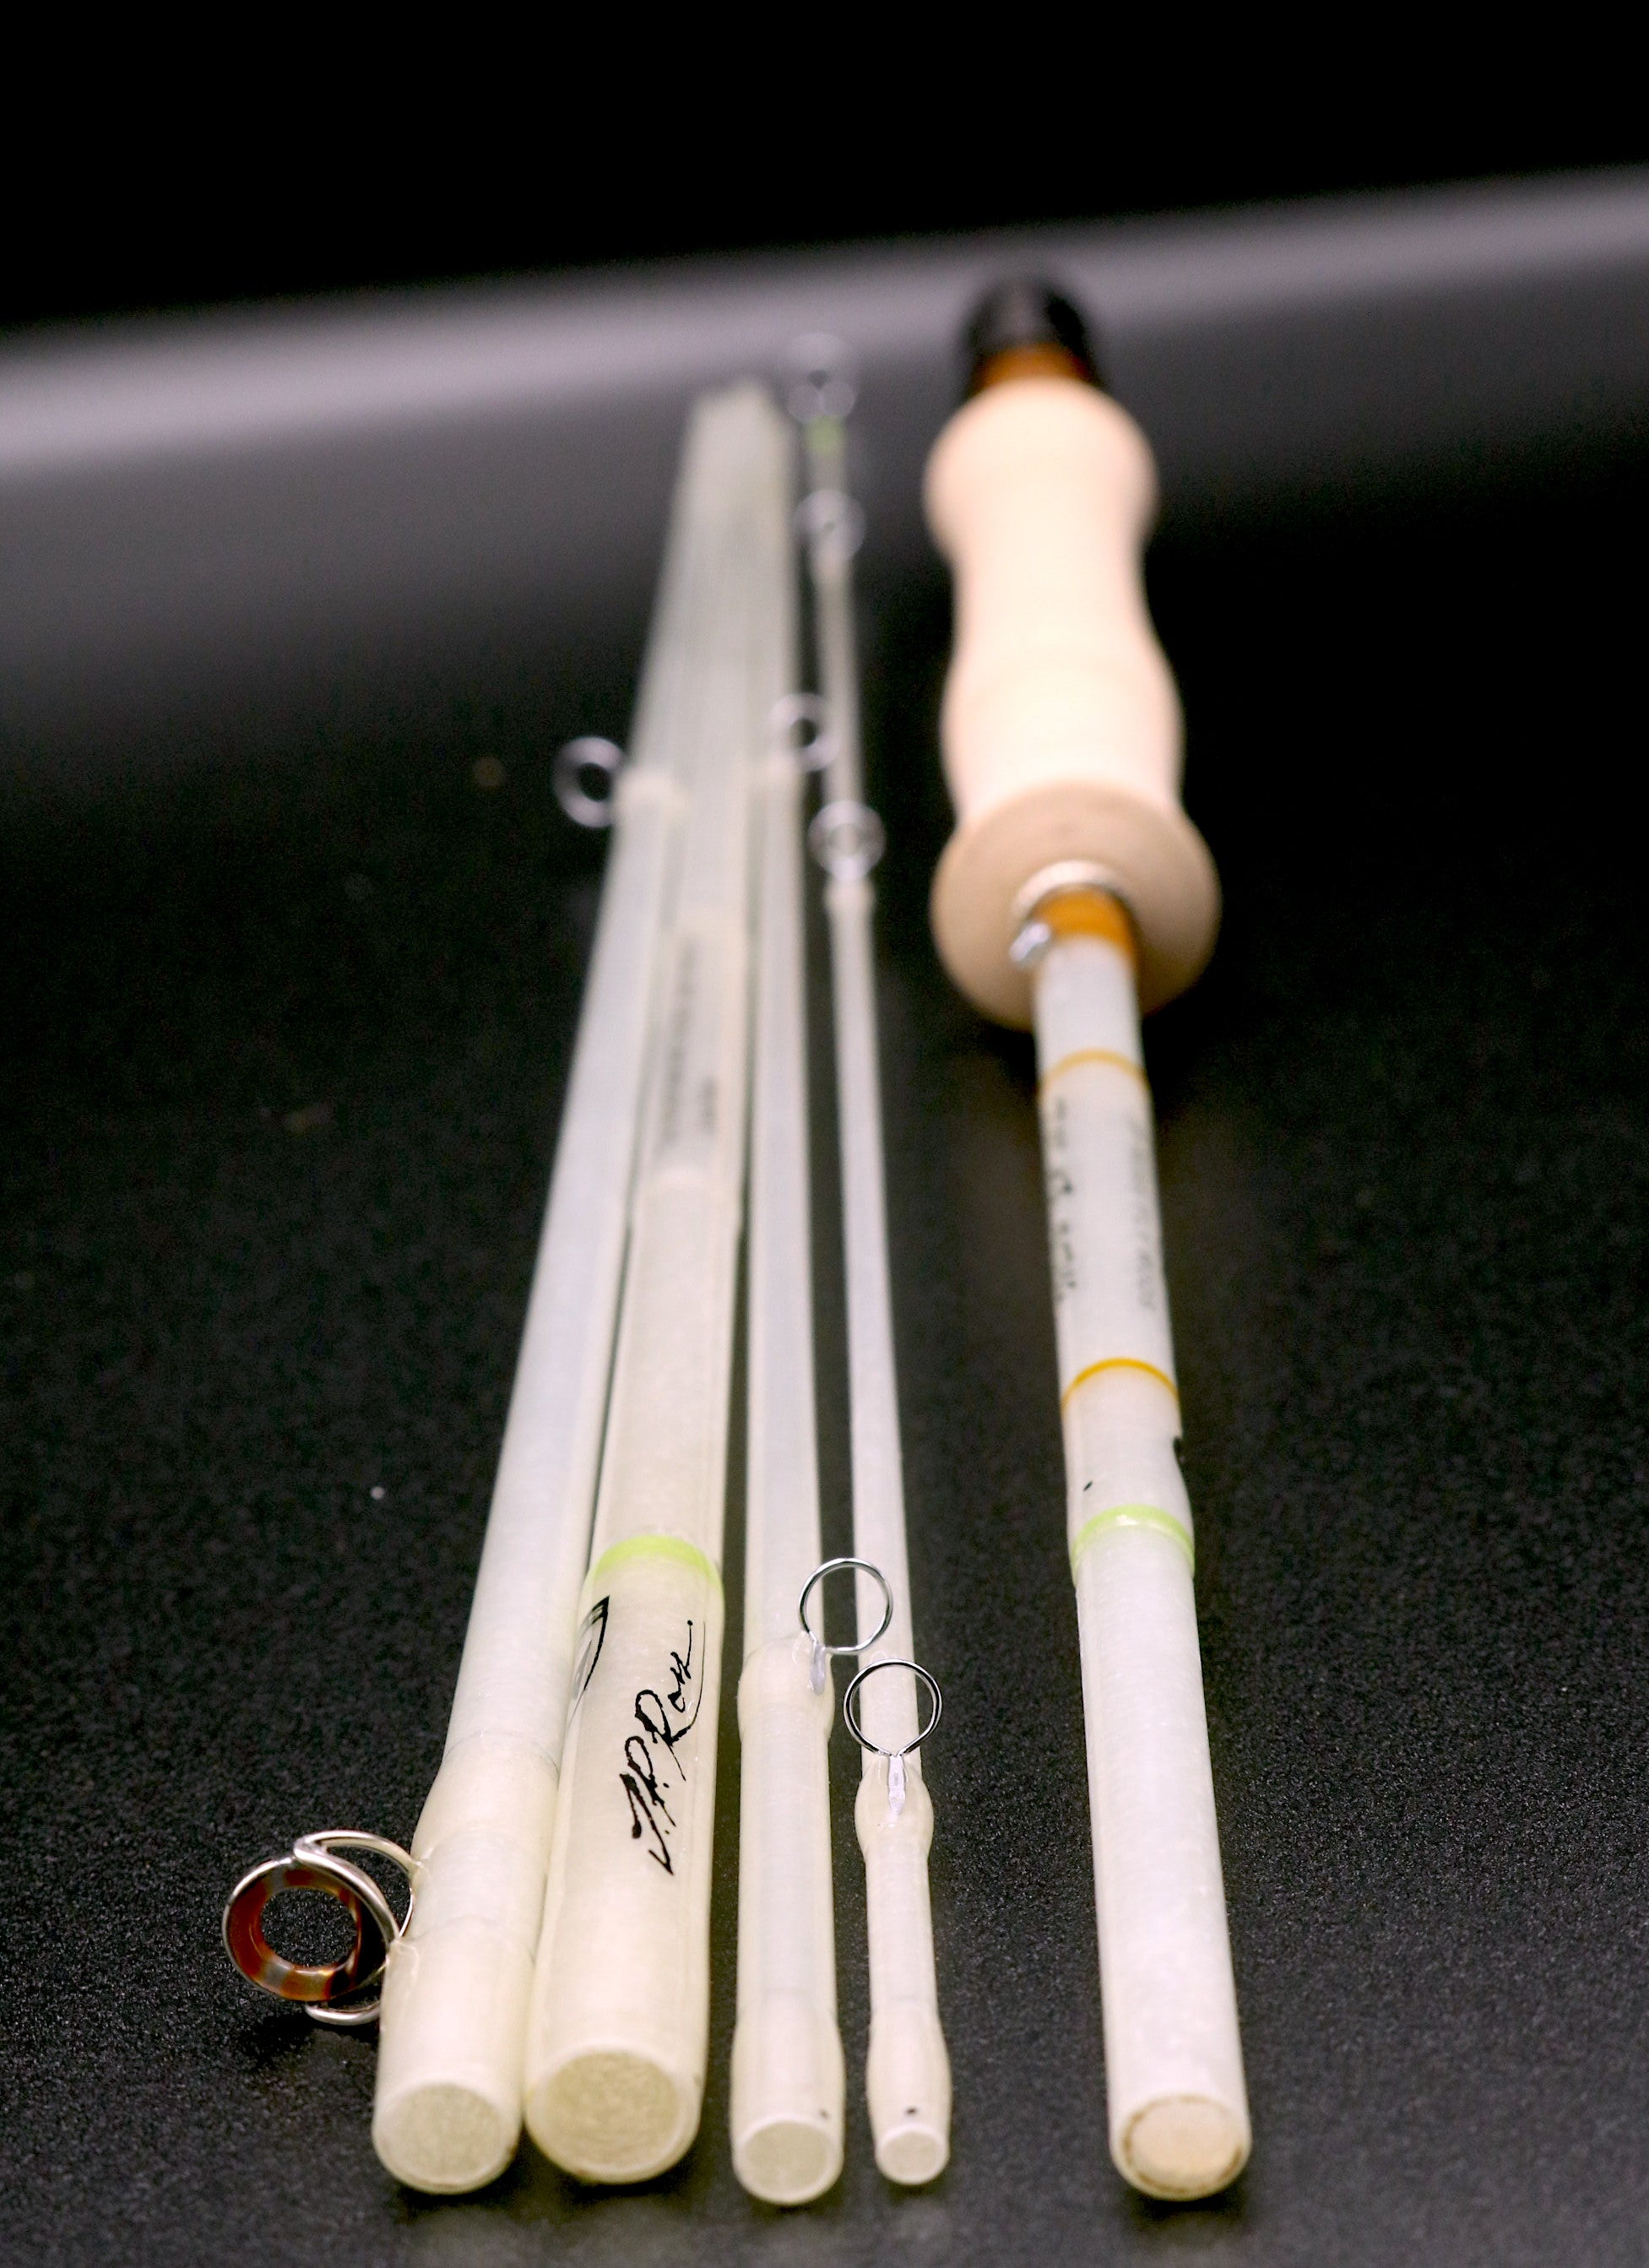 Muir Glass pack rod 7 foot 3 weight 5 piece NEW 2021